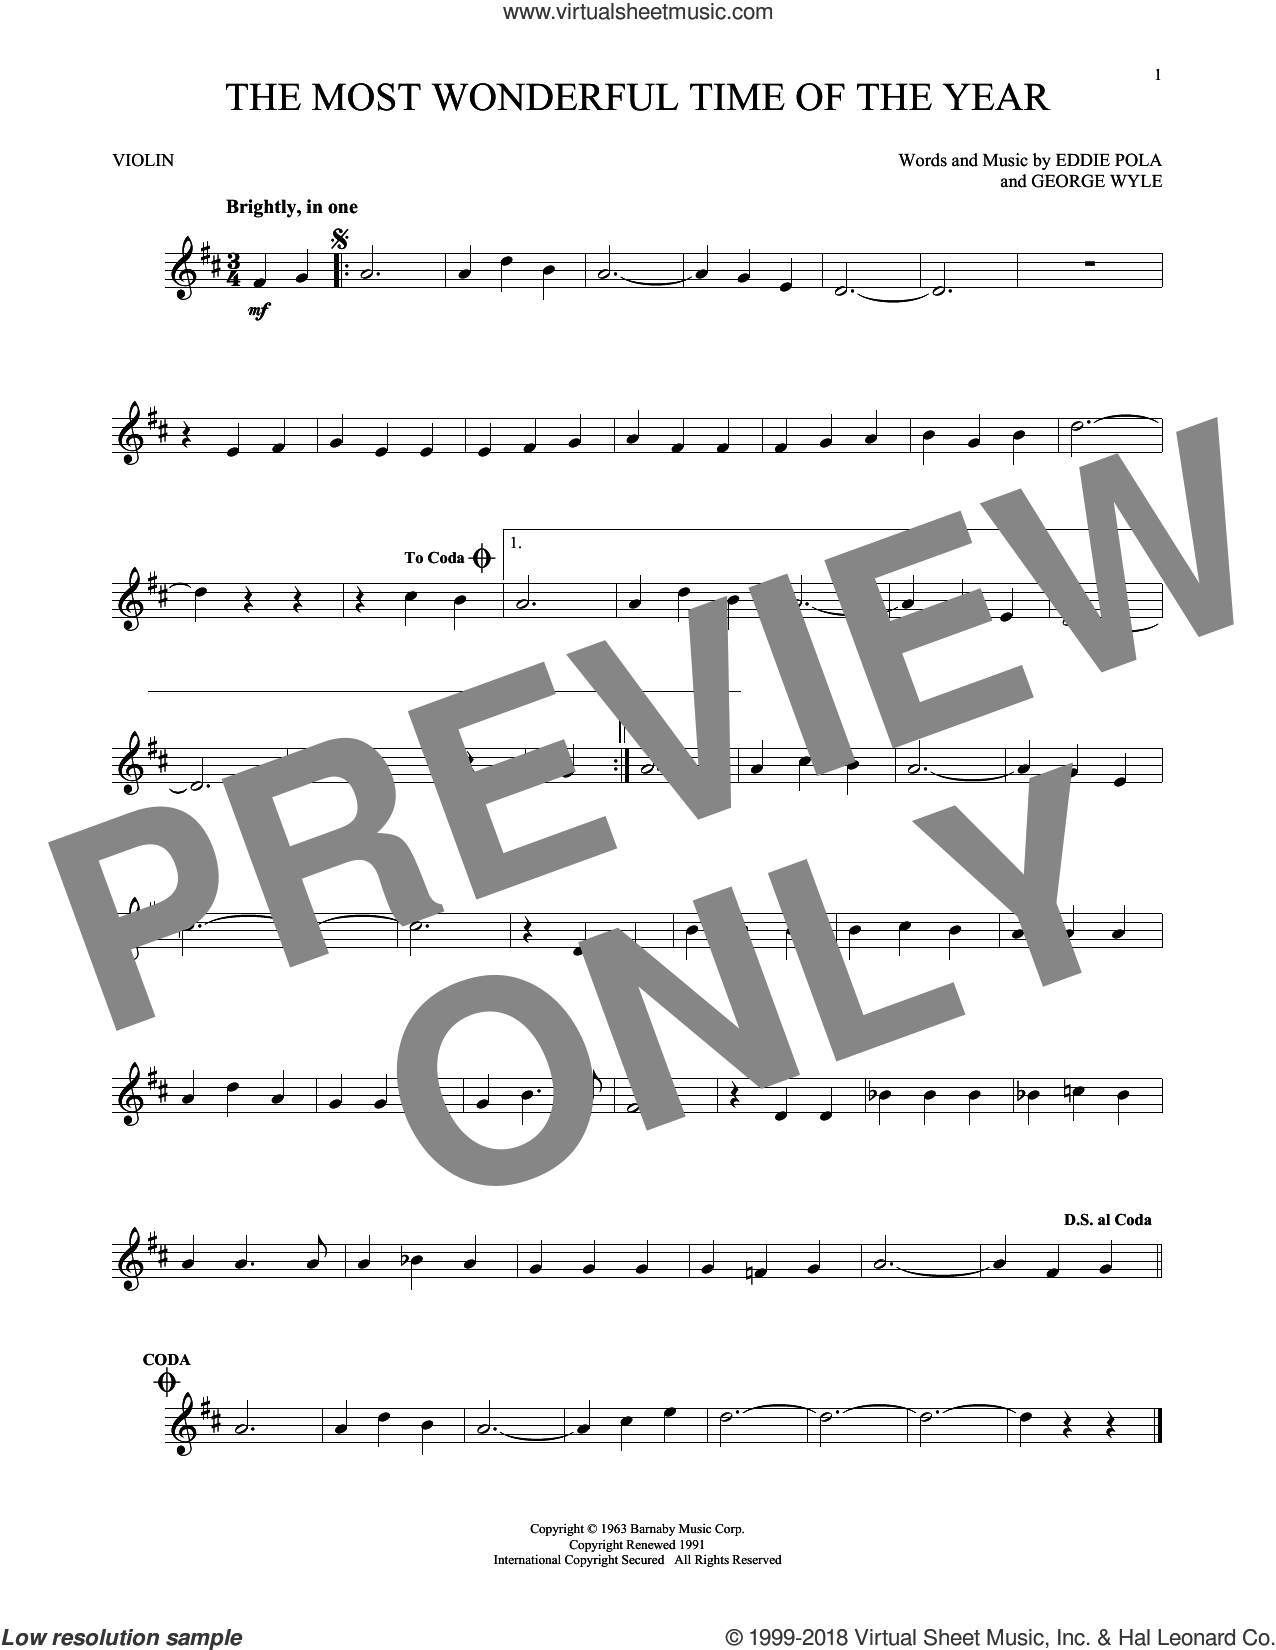 The Most Wonderful Time Of The Year sheet music for violin solo by George Wyle, Andy Williams and Eddie Pola, Christmas carol score, intermediate violin. Score Image Preview.